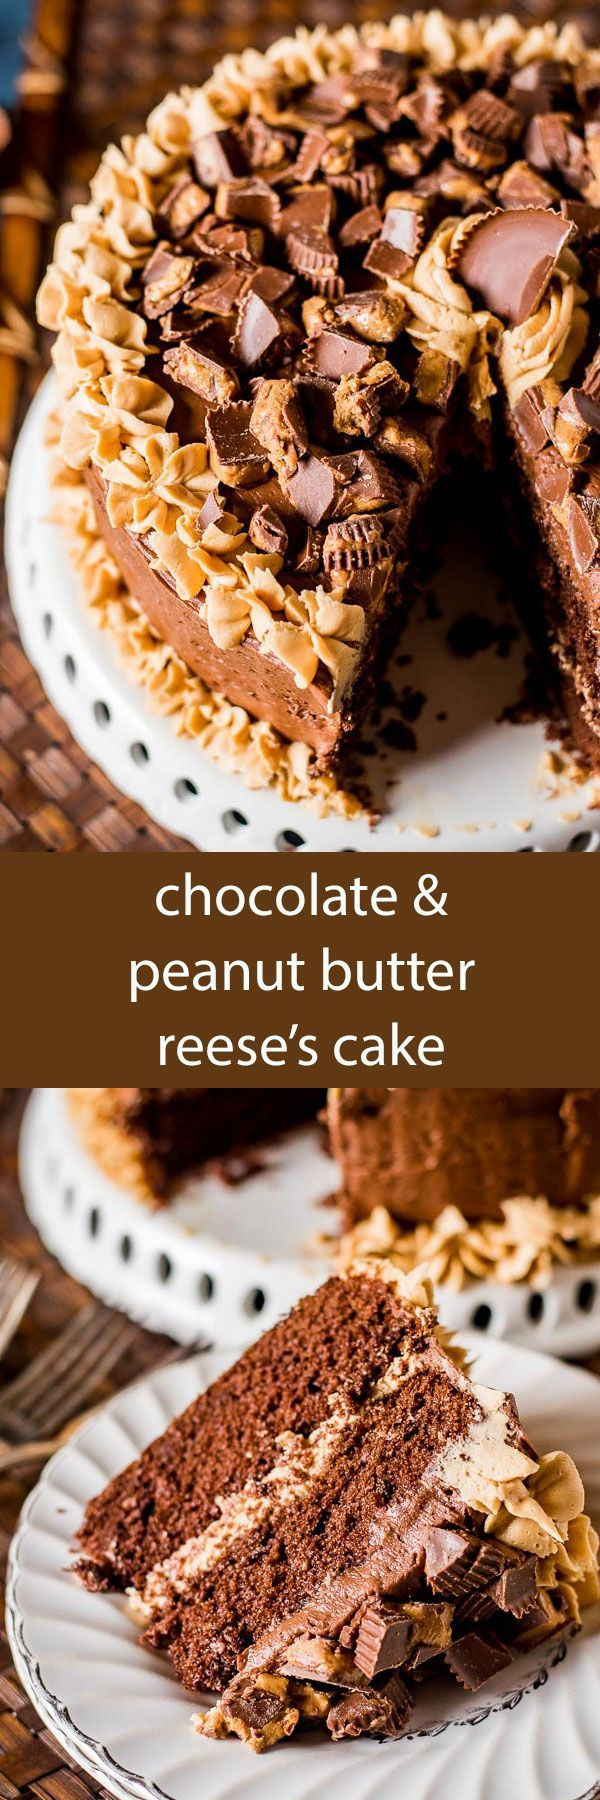 Chocolate Peanut Butter Reese's Cake is a moist, from scratch chocolate cake with peanut butter frosting and chocolate buttercream frosting! Perfect for the Reese's peanut butter cup lover in your lif